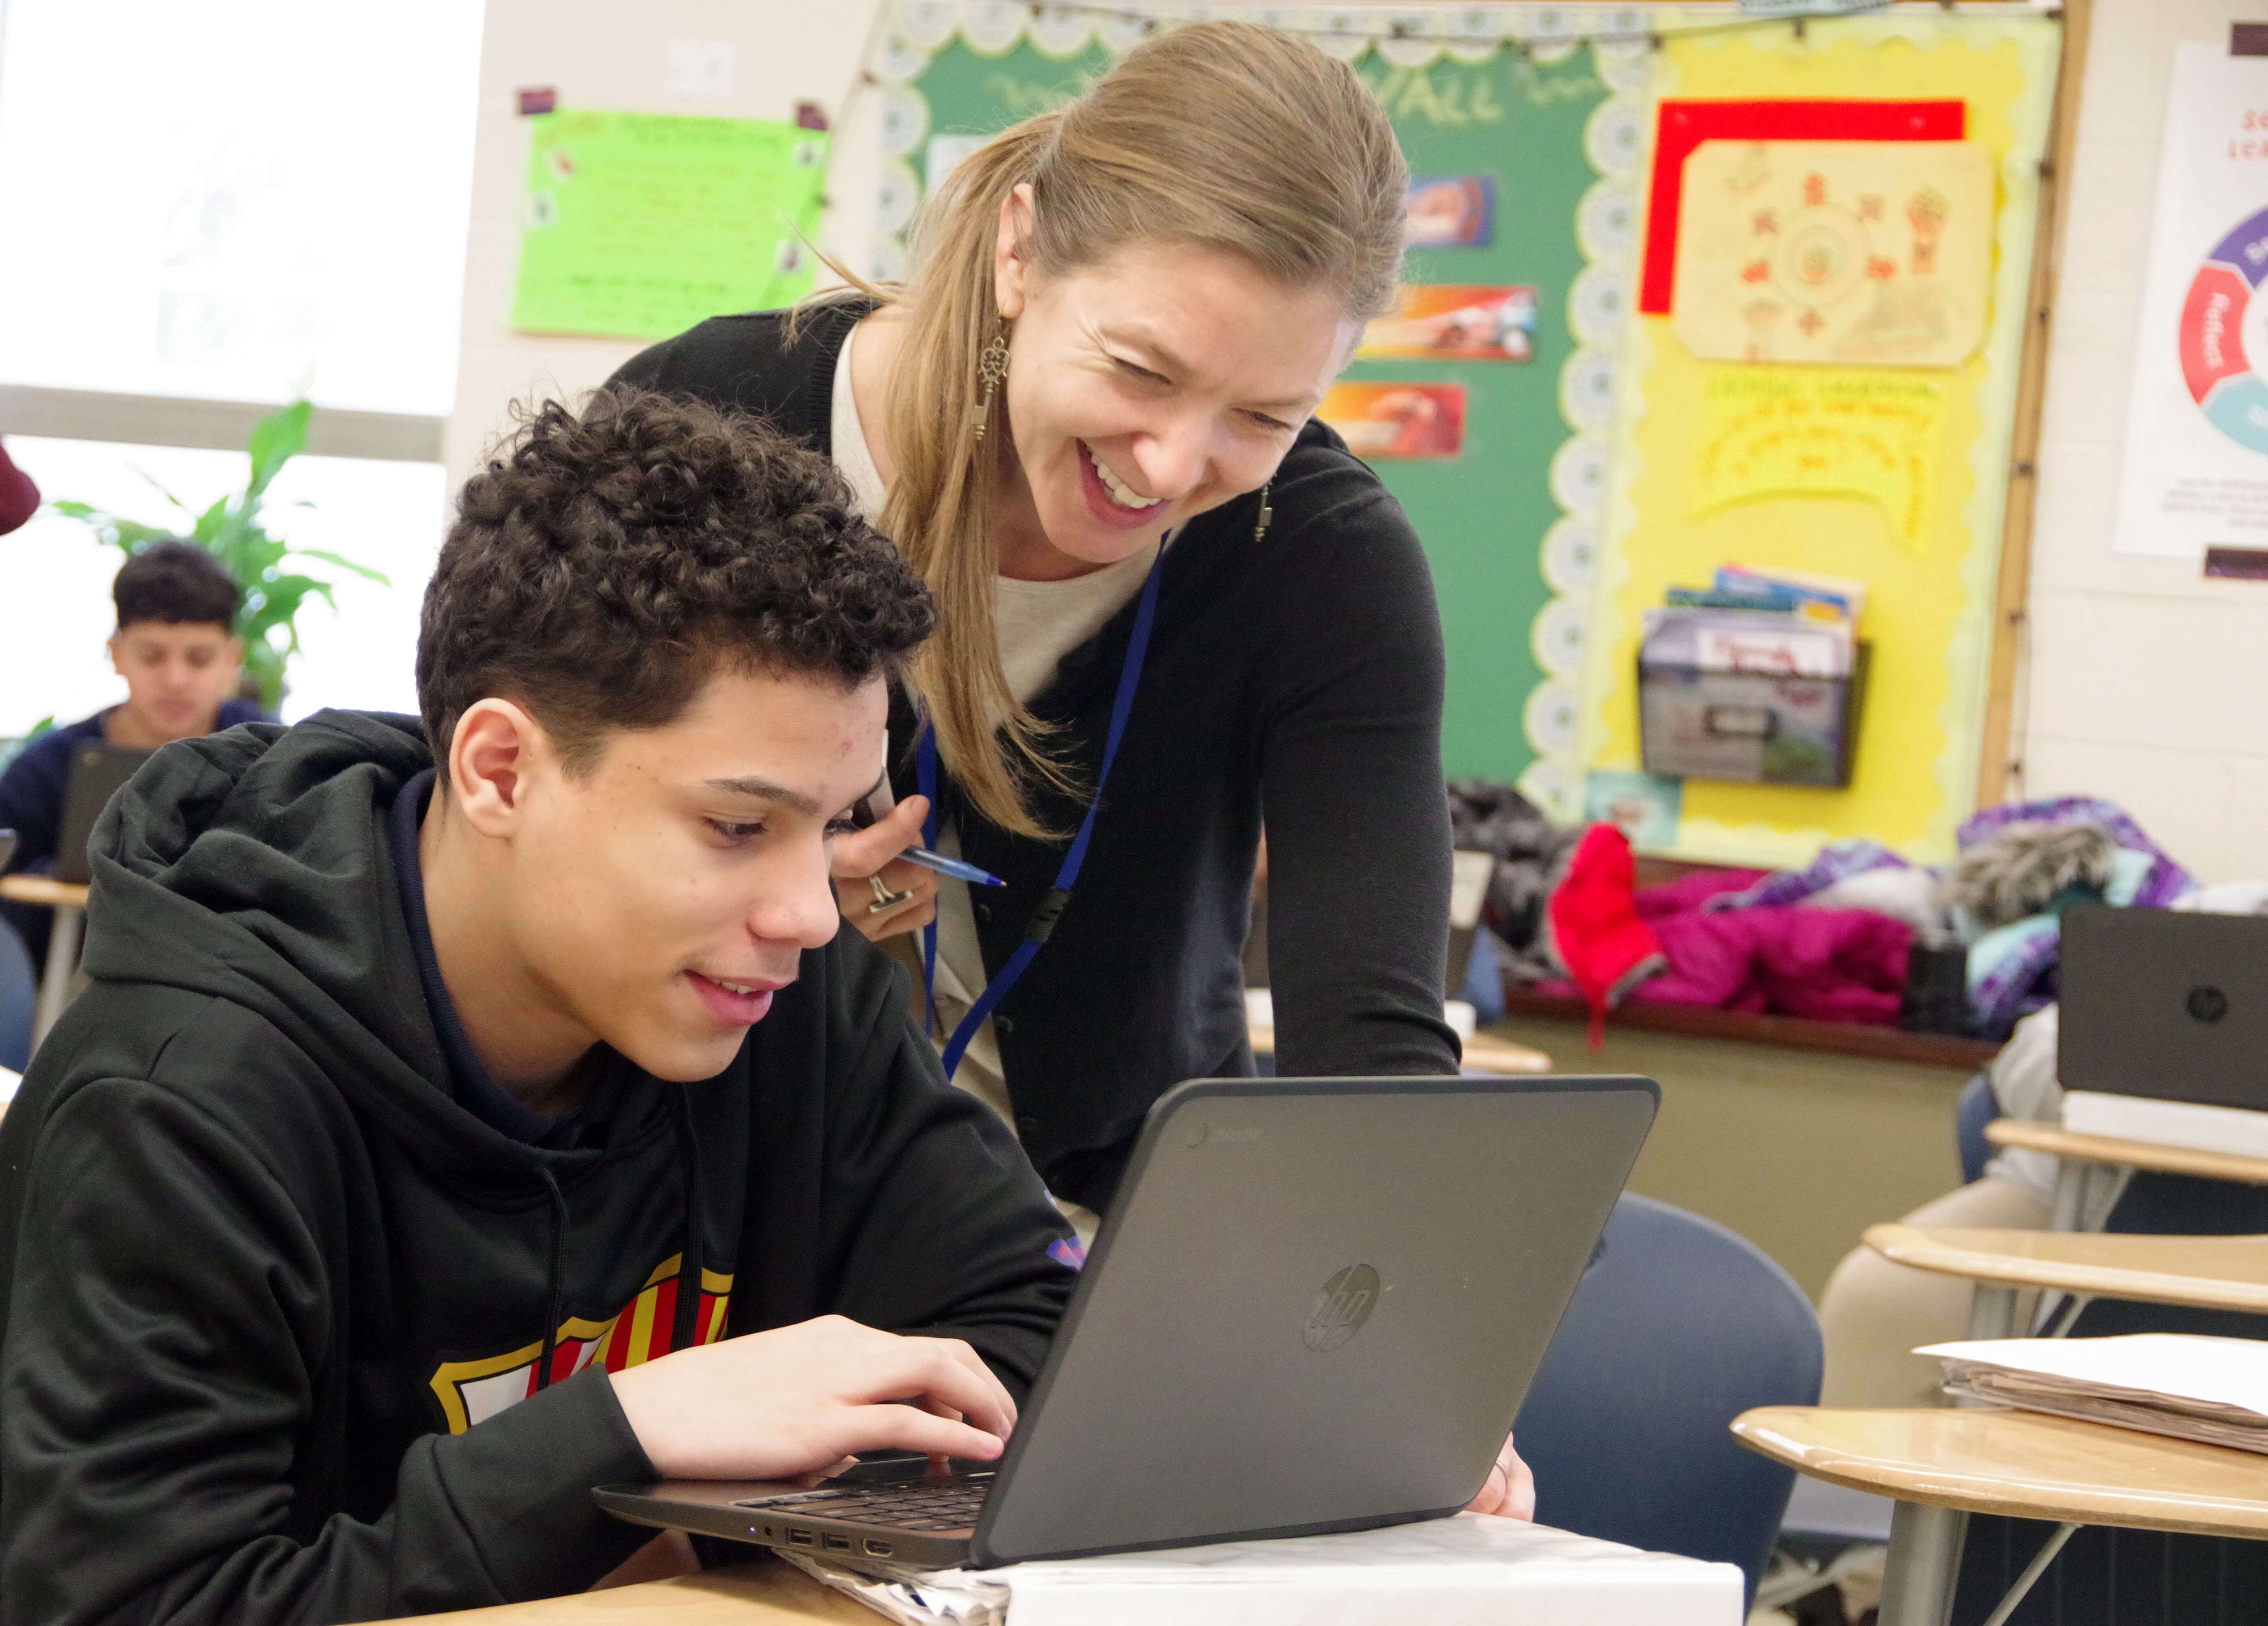 Peck teacher laughing with student working on a laptop